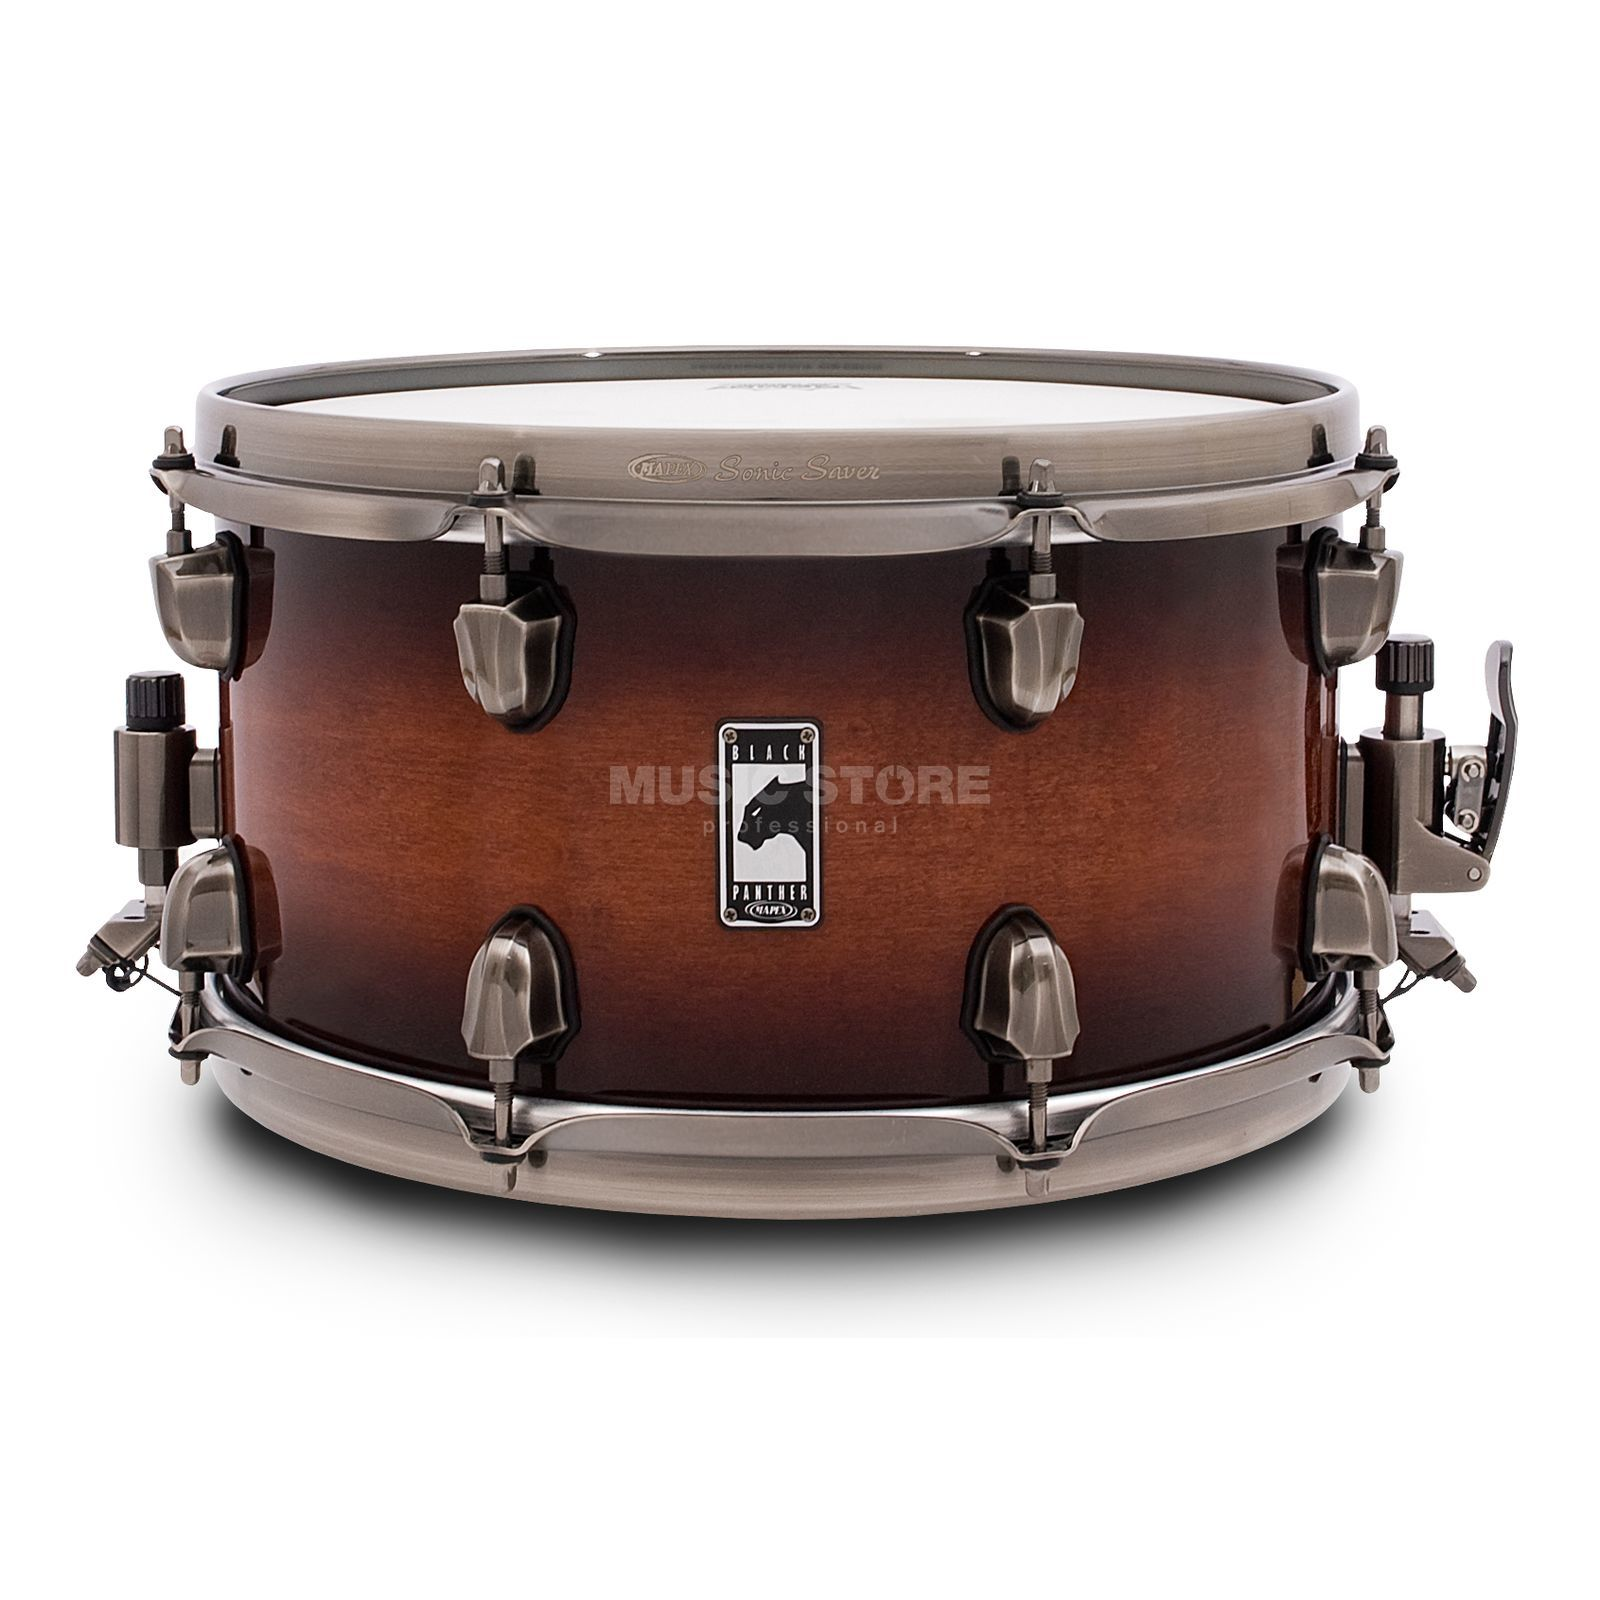 "Mapex Black Panther Snare 13""x7"", ""The Blaster"" Product Image"